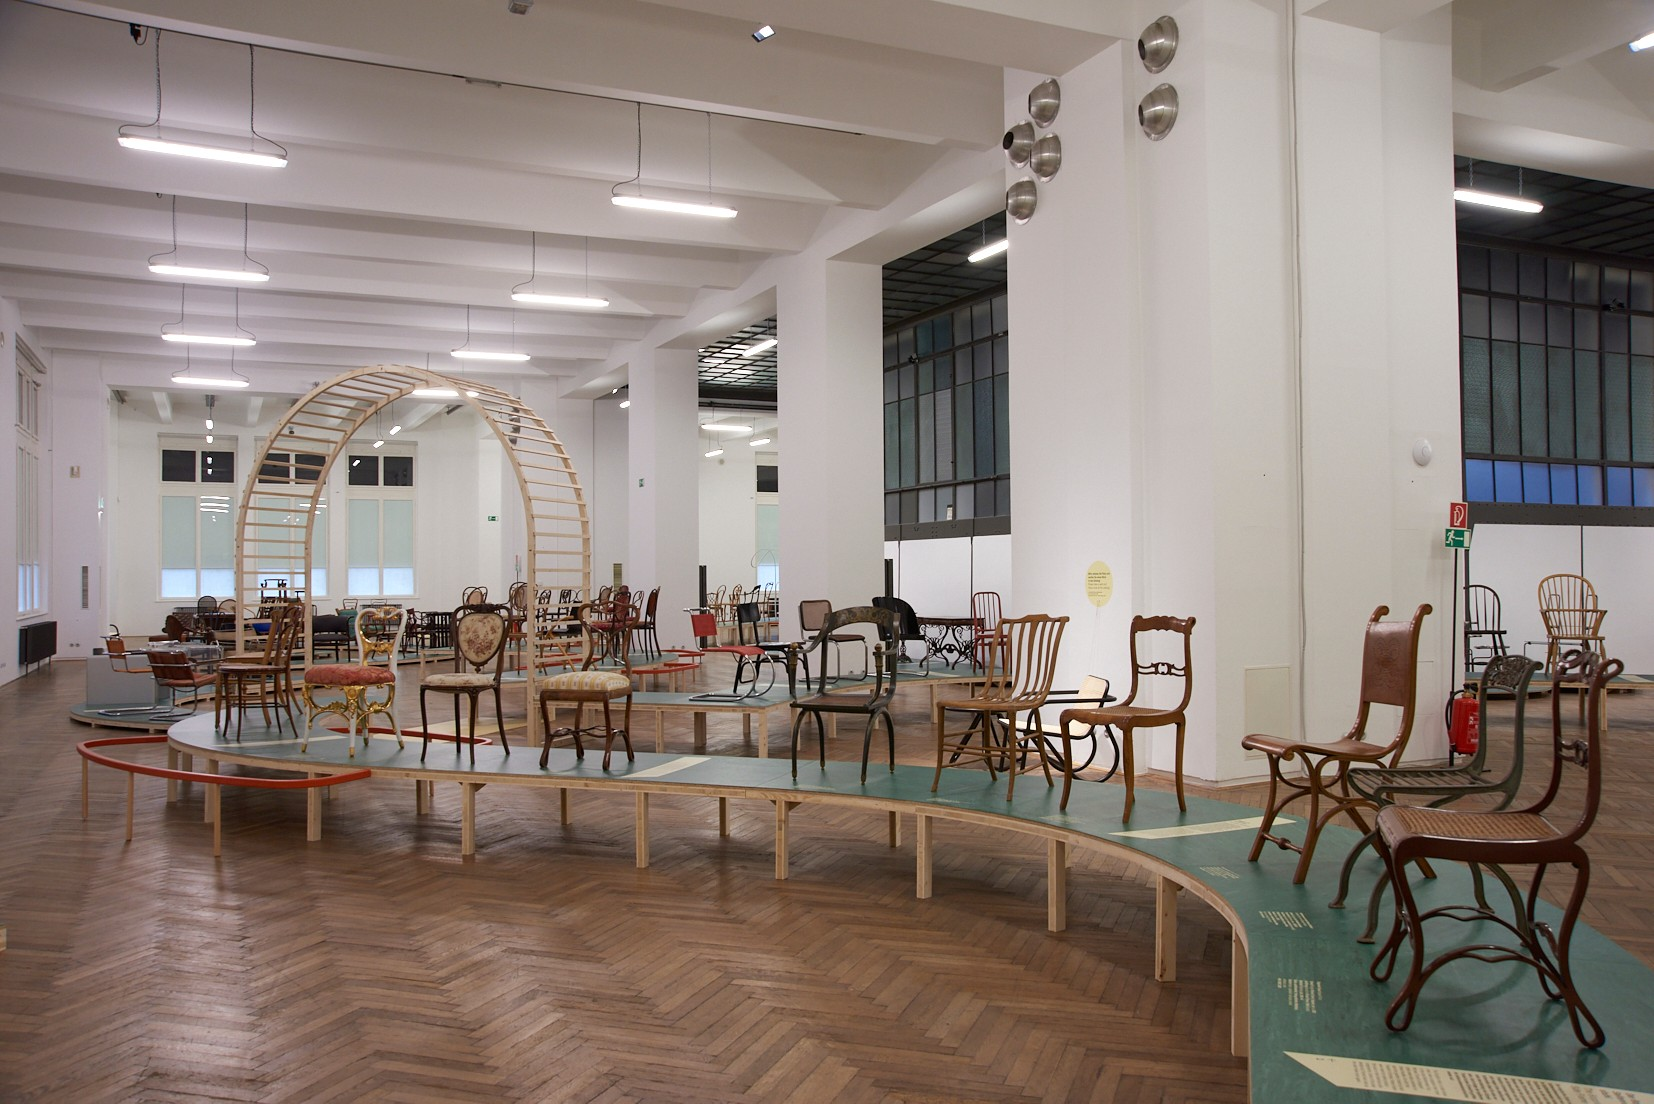 <BODY><div>MAK Exhibition View, 2019</div><div>BENTWOOD AND BEYOND</div><div>Thonet and Modern Furniture Design</div><div>MAK Exhibition Hall</div><div>© MAK/Georg Mayer</div></BODY>